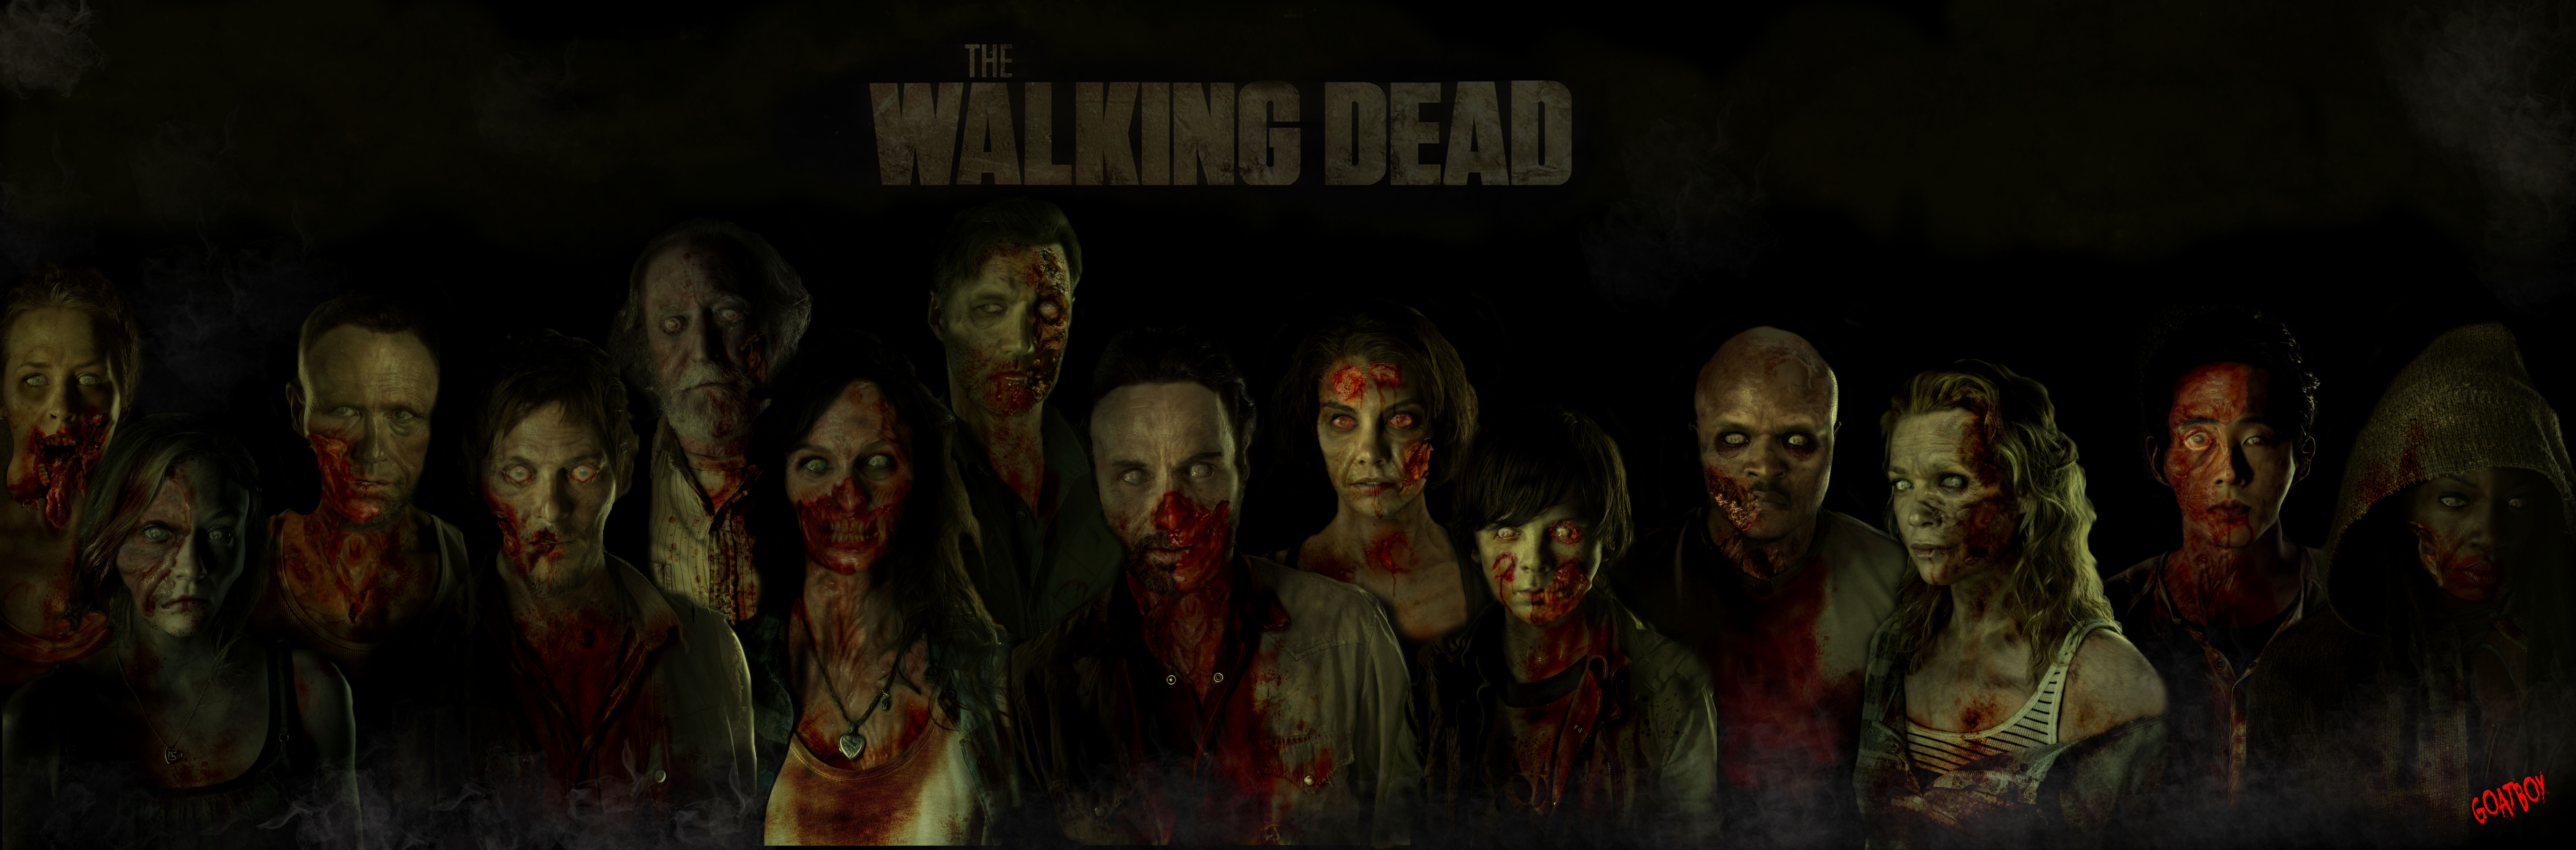 The Walking Dead Zombie Cast Wallpaper Moriarty Of Gore Home 10000x3299